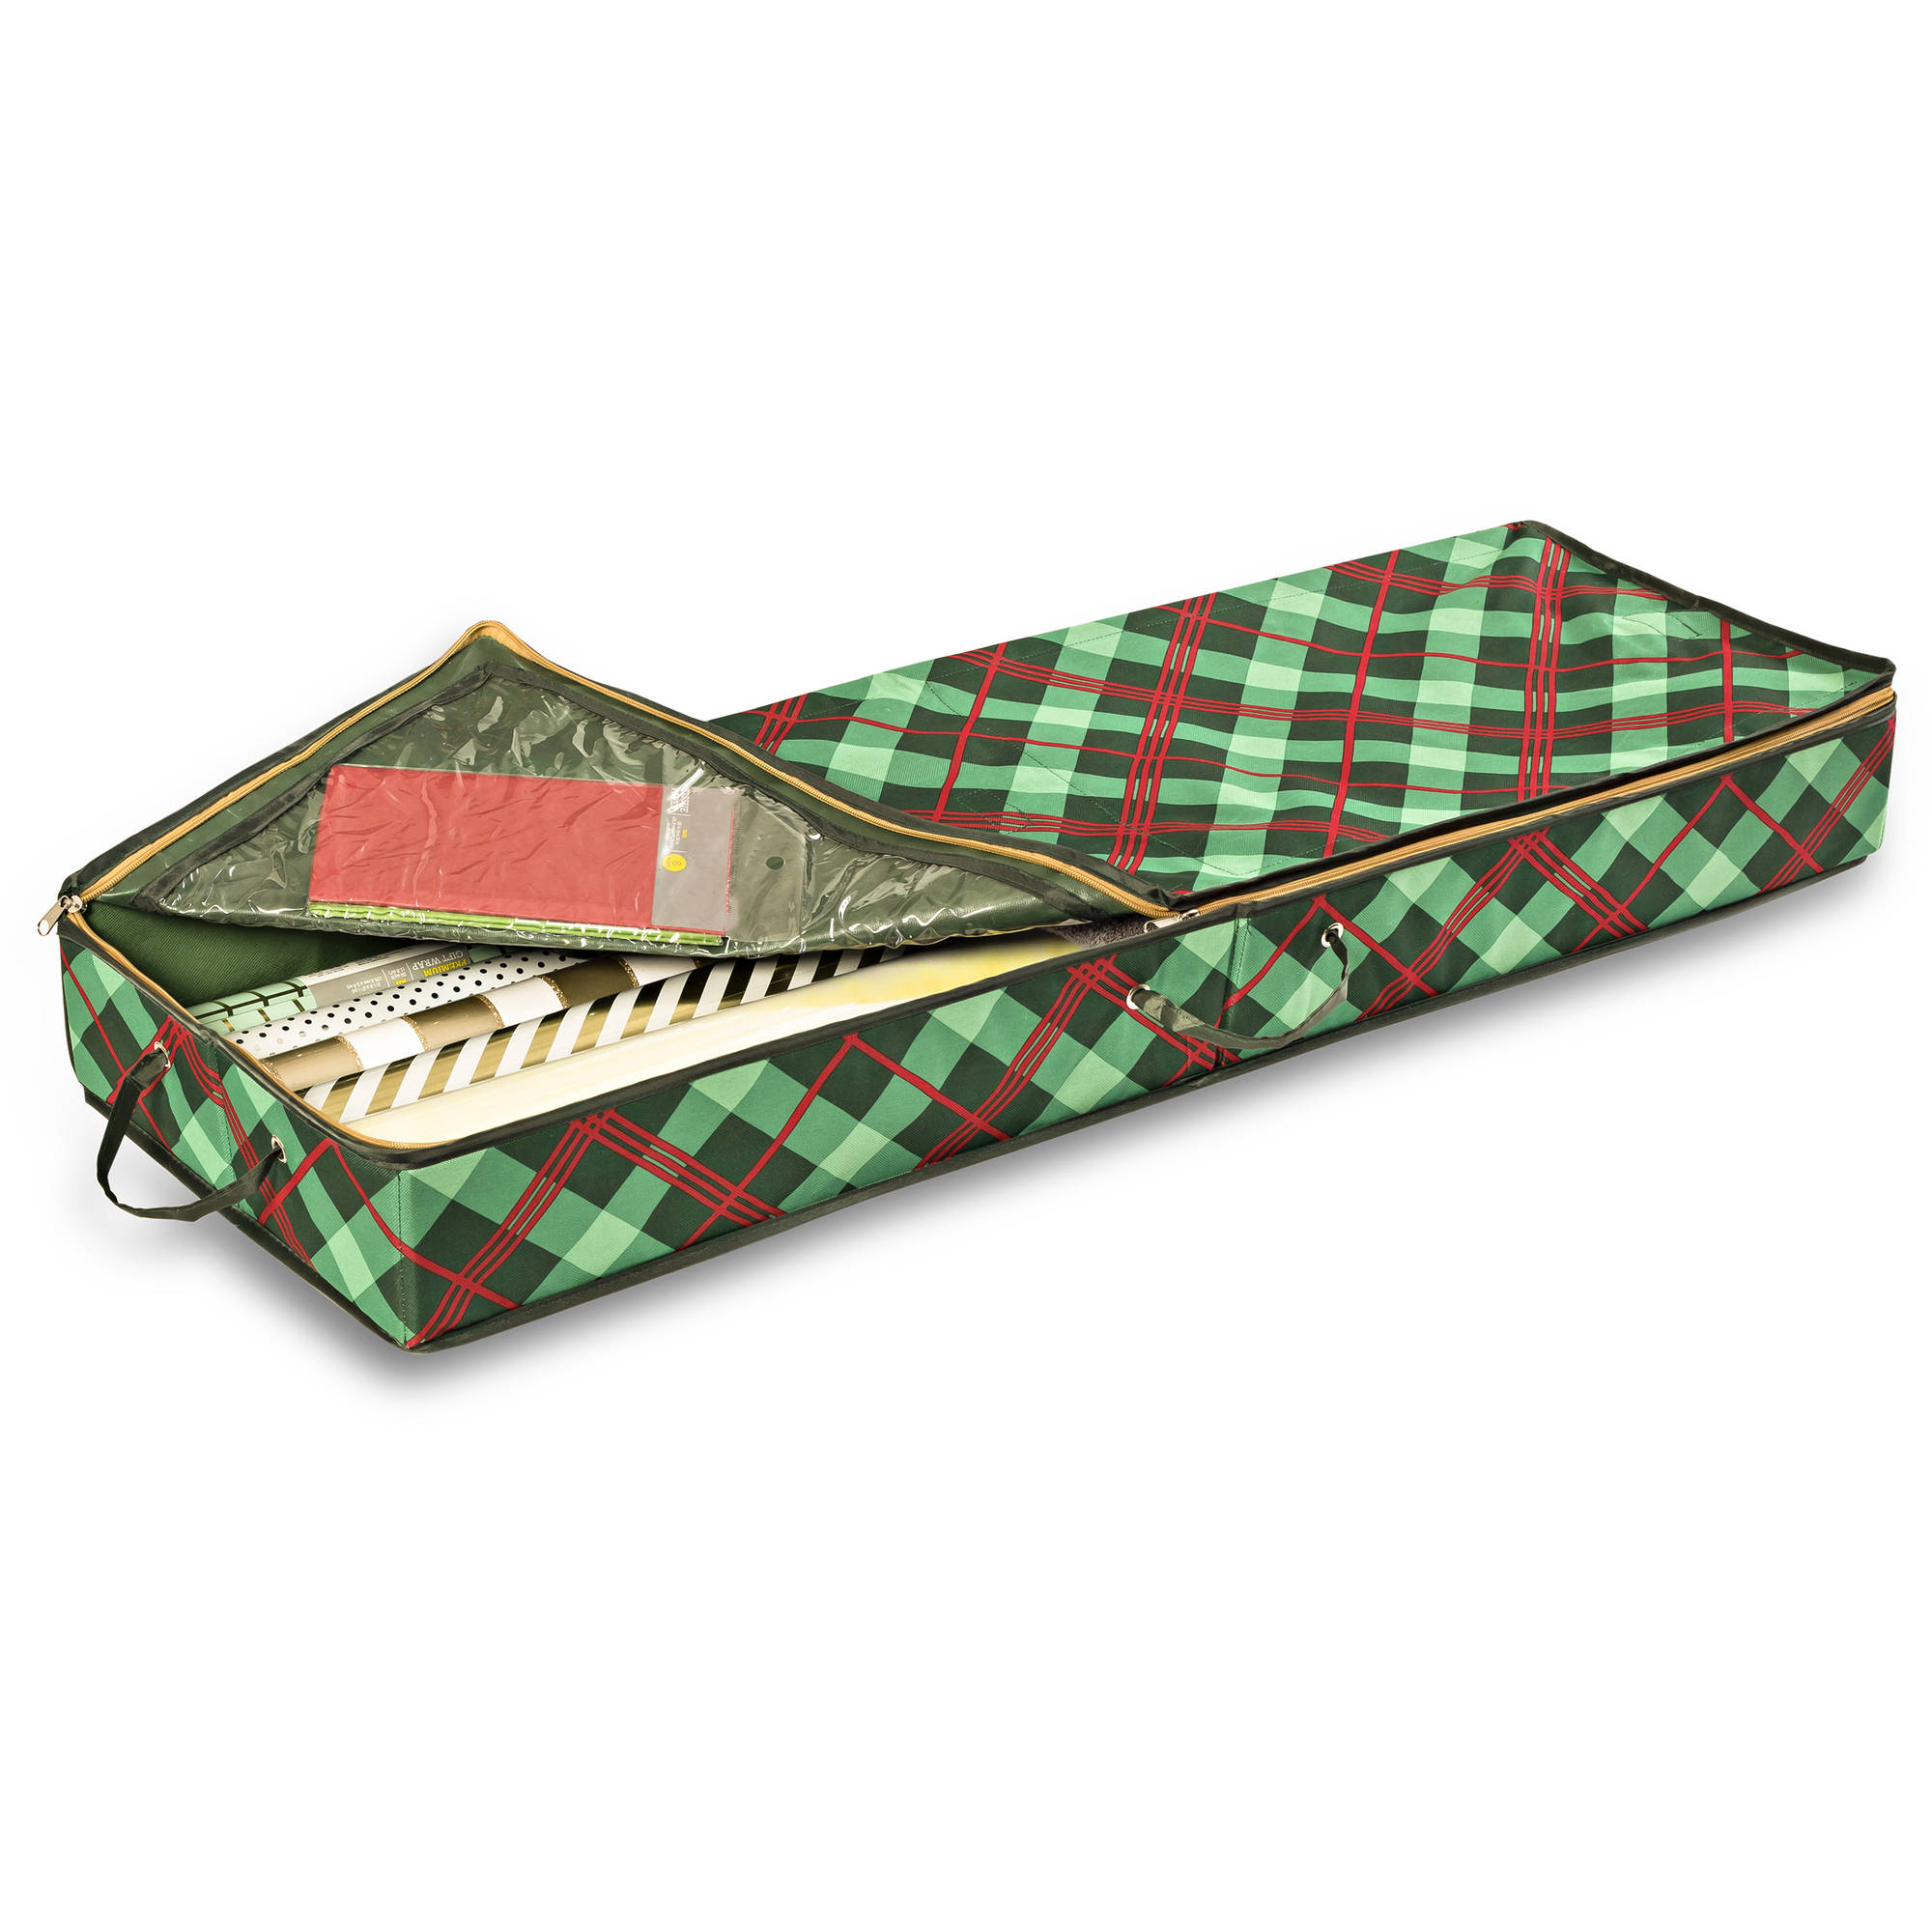 Honey Can Do Limited Edition Plaid Gift Wrap Organizer with Handles